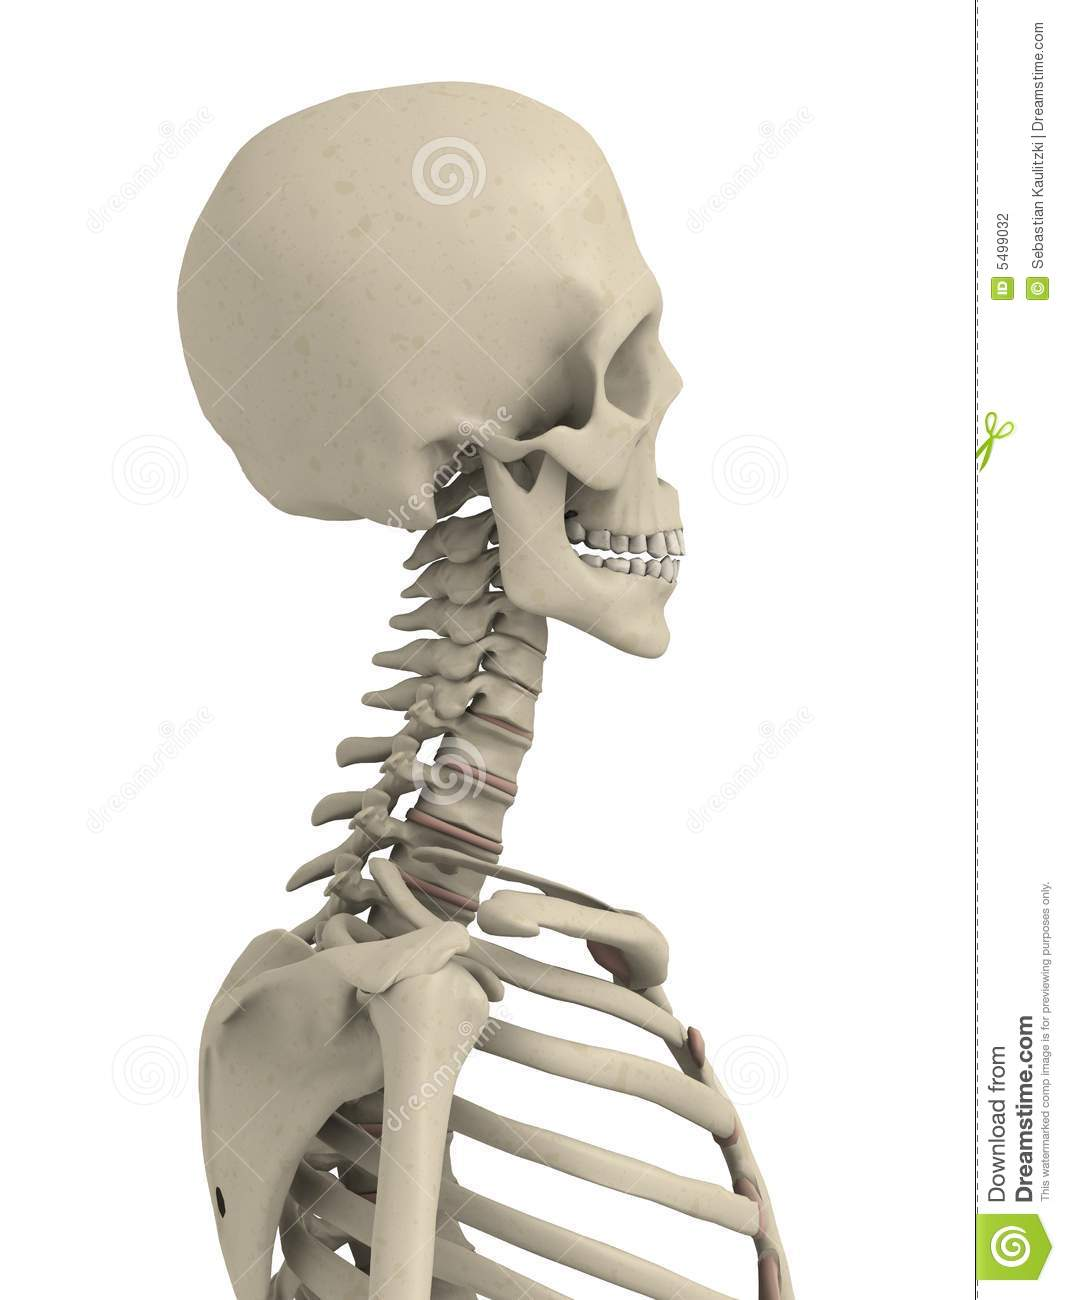 skeletal neck and scull stock photography - image: 5499032, Skeleton